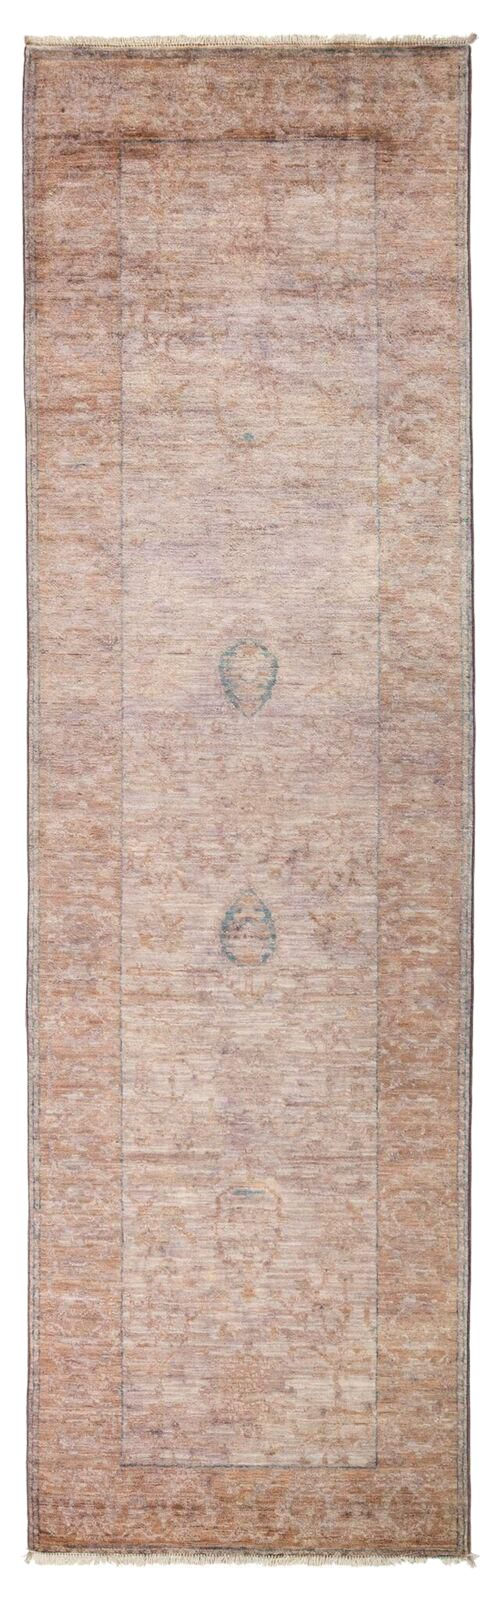 In saturated, all-over dyes, these hand-knotted rugs have modern vibrancy. Originally a Moroccan, Traditional, or Ikat, the rugs reveal classic designs beneath their gorgeous colors. Whether a soft pastel or a vibrant hue, the rugs make bold chromatic statements.